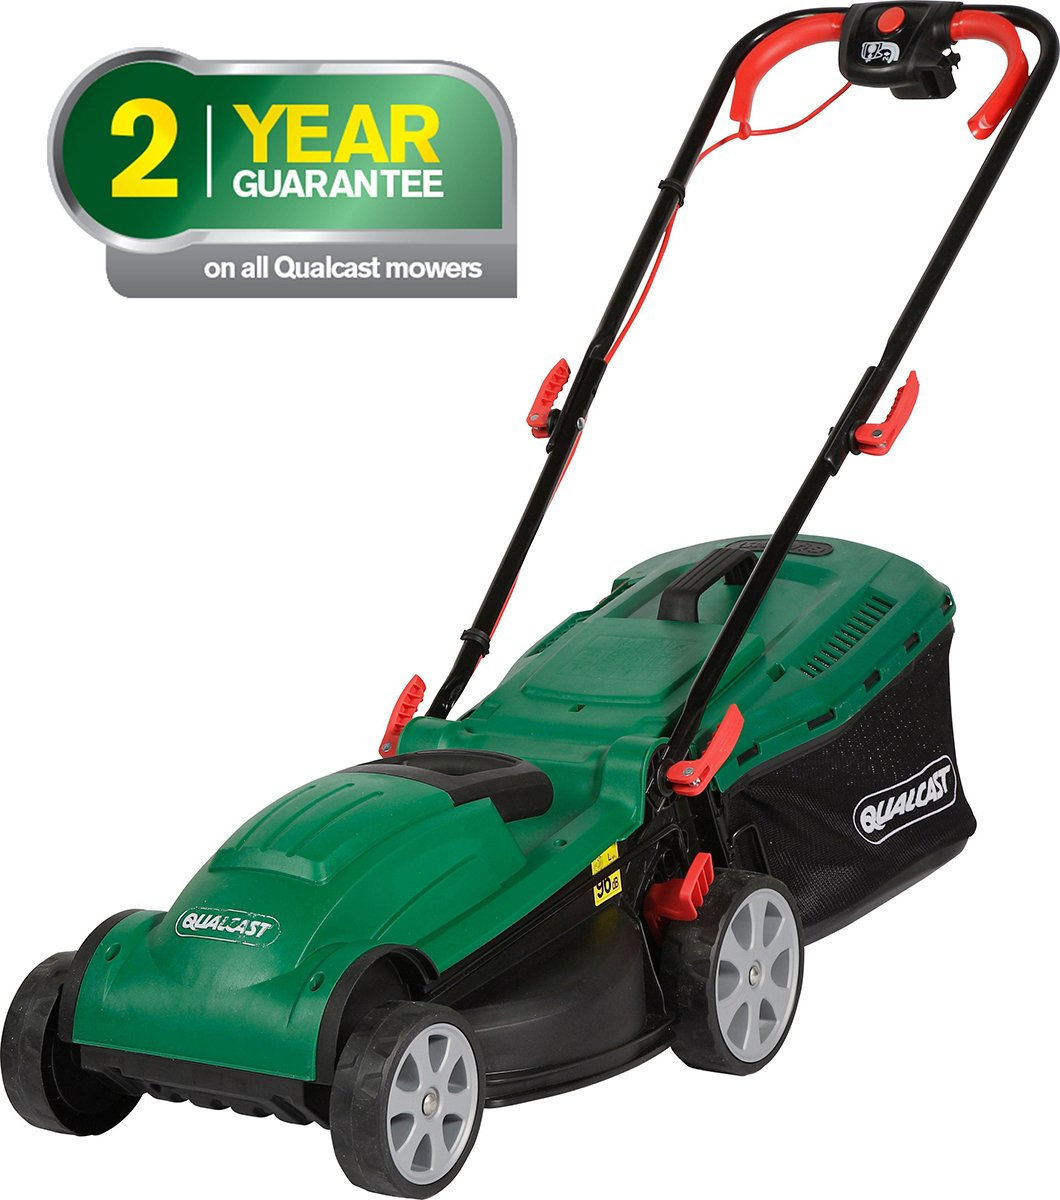 Qualcast - Corded Rotary - Lawnmover - 1400W lowest price